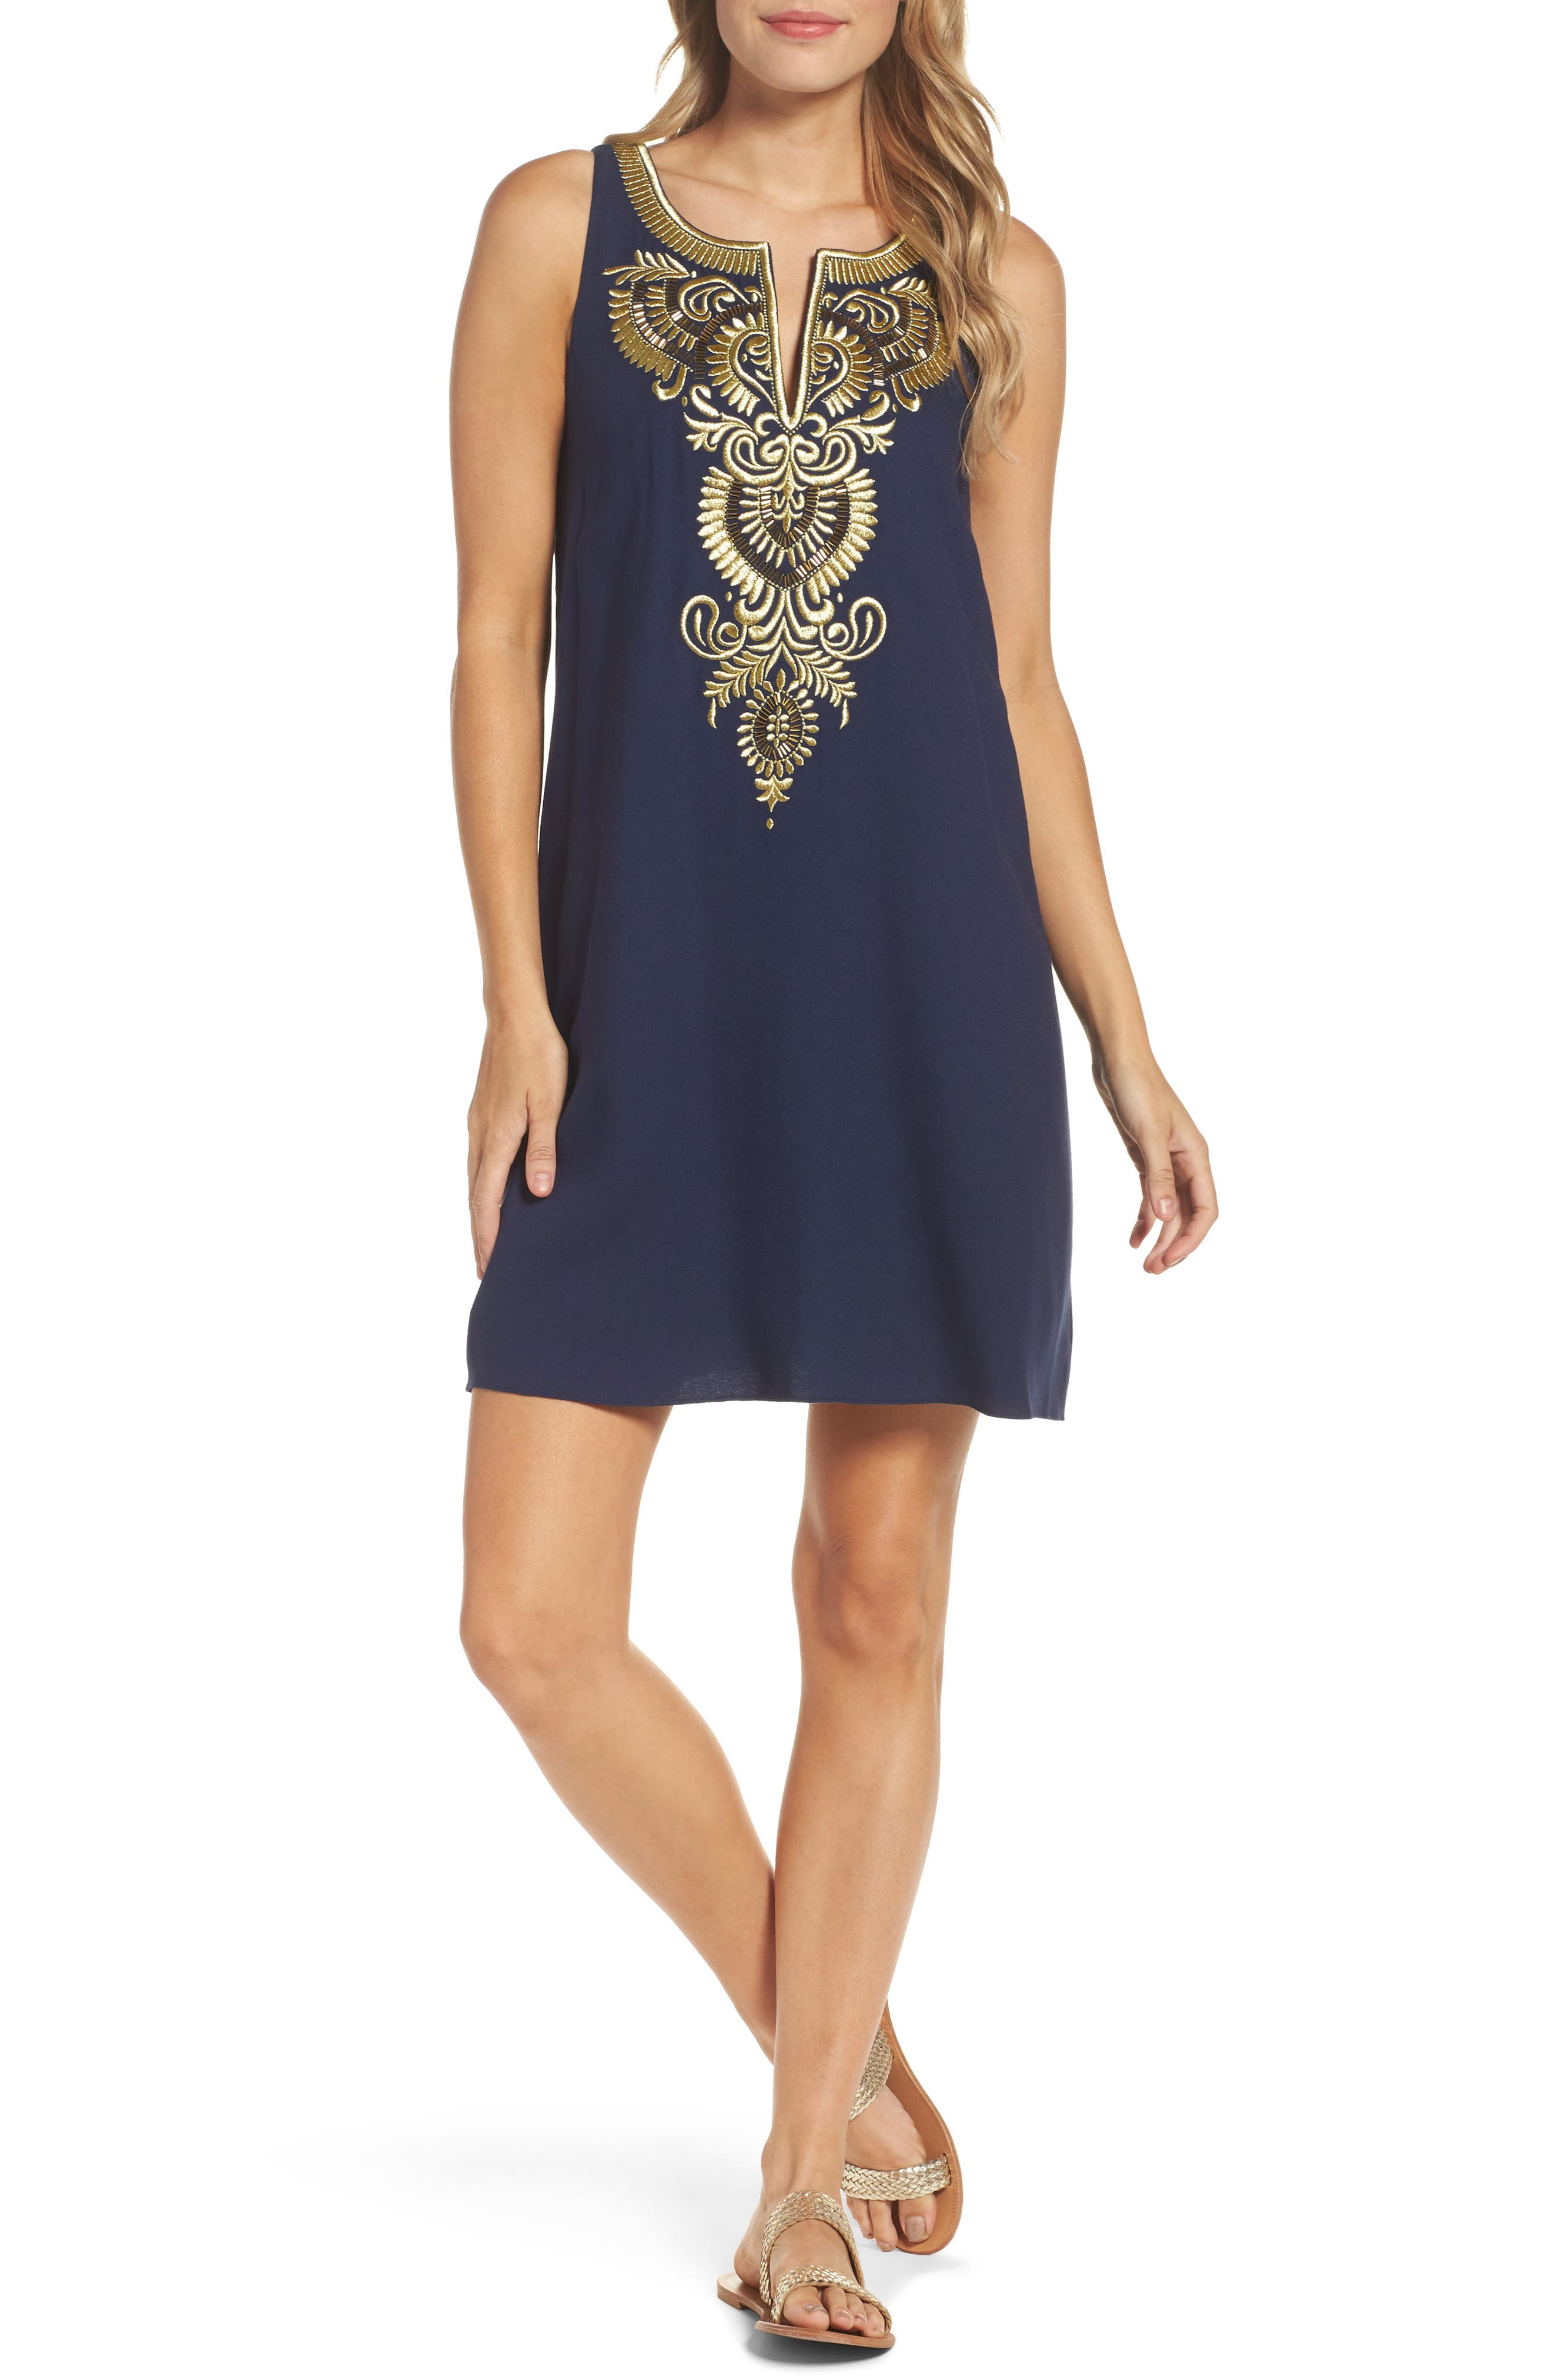 Aubra Embroidered Shift Dress,                             Main thumbnail 1, color,                             408